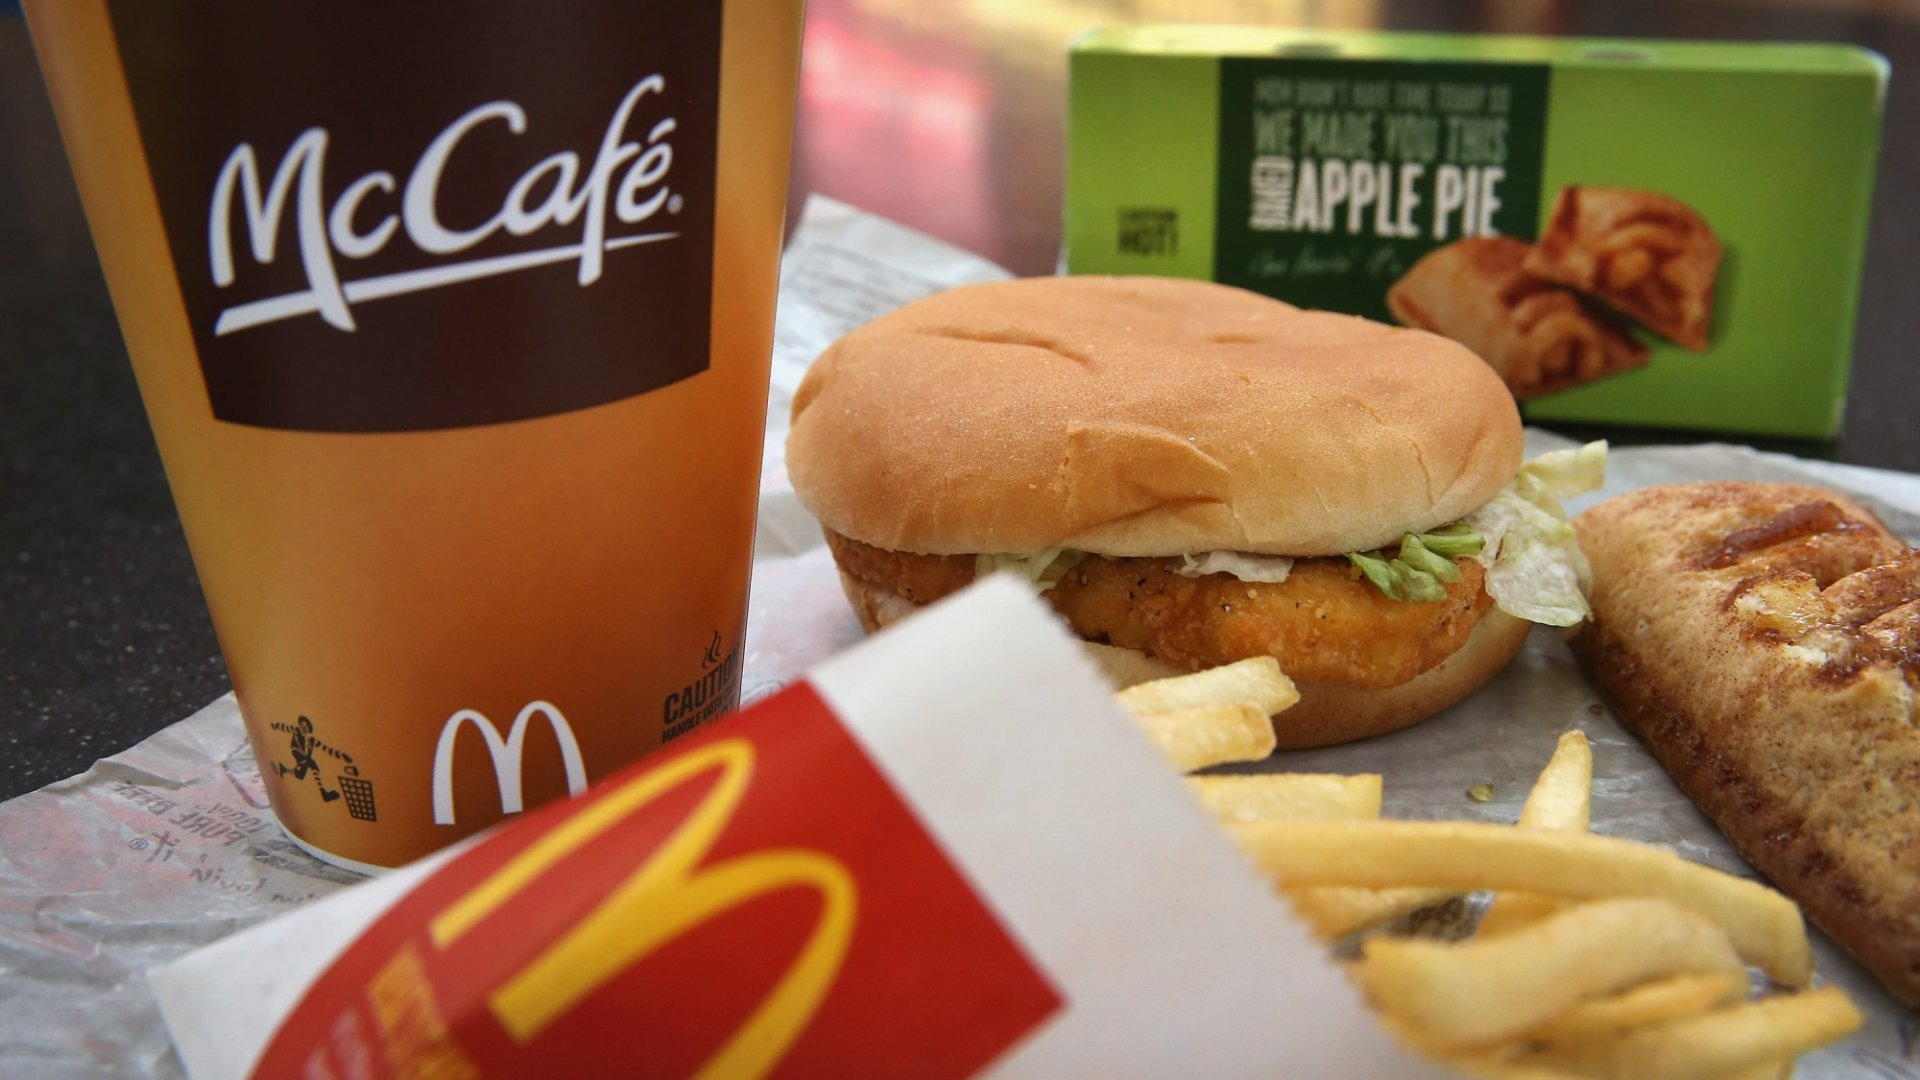 McDonald's Bets Big on Its New 1-2-3 Strategy to Bring Back Consumers